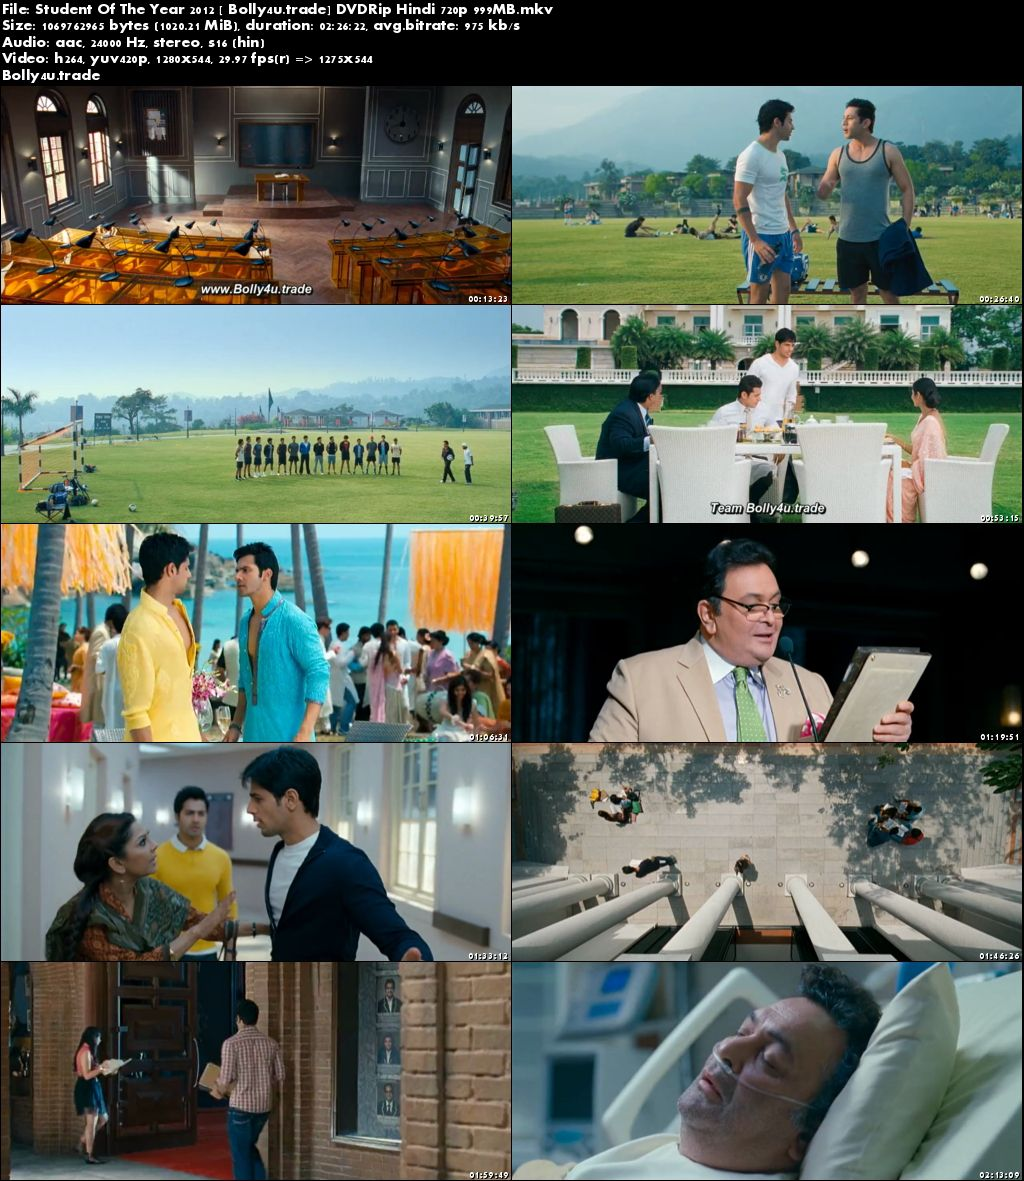 Student Of The Year 2012 DVDRip 999MB Hindi 720p Download